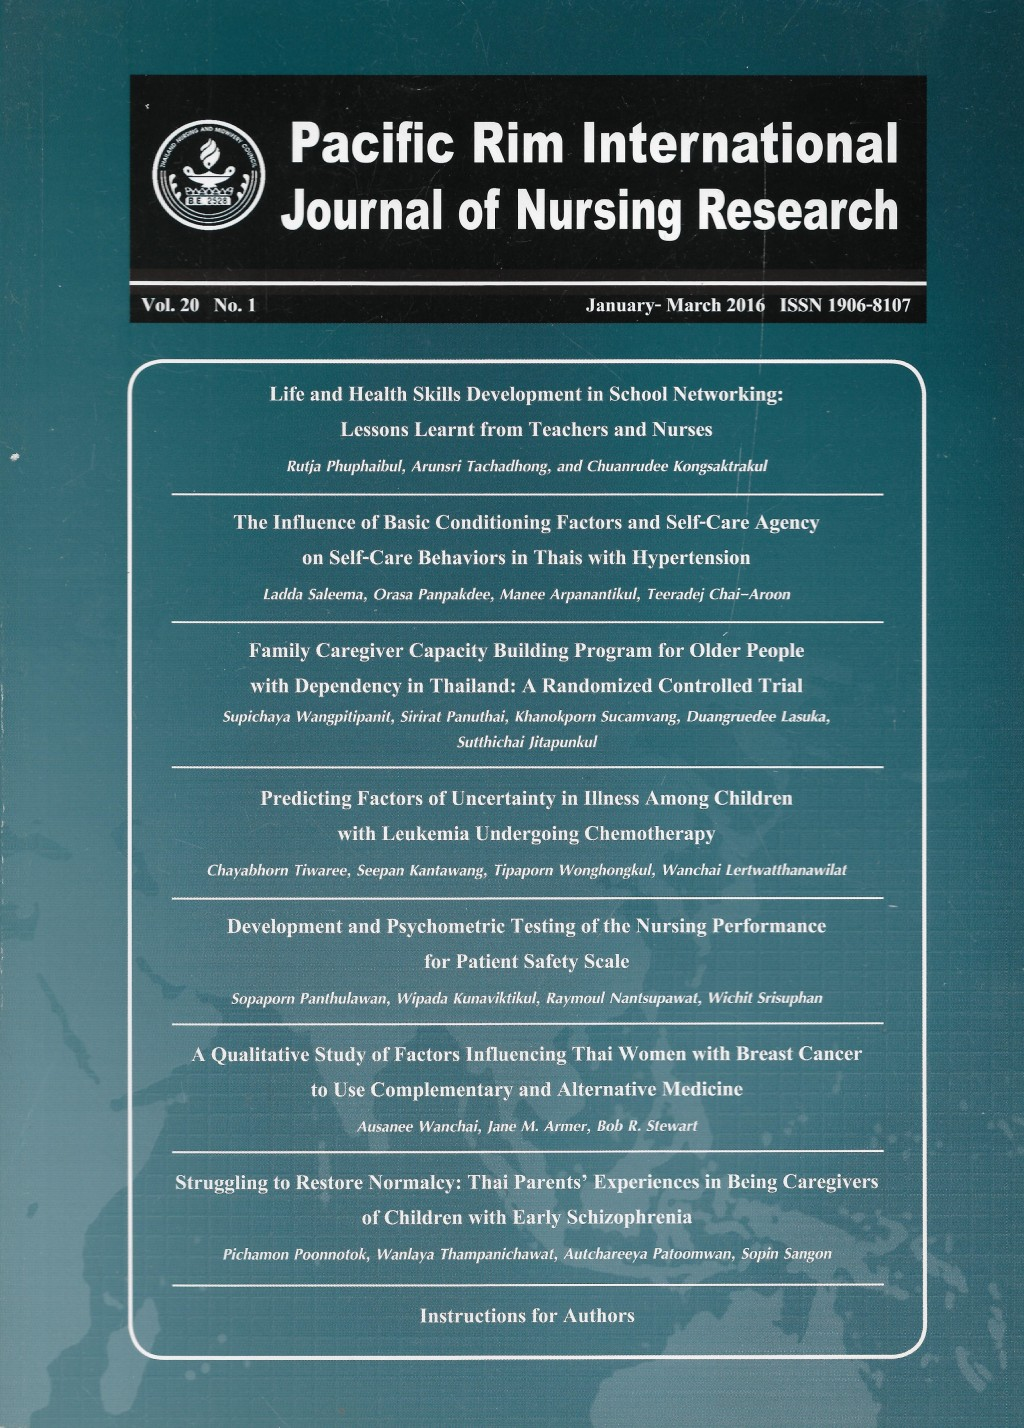 012 Nursing Research Articles On Schizophrenia Paper Cover